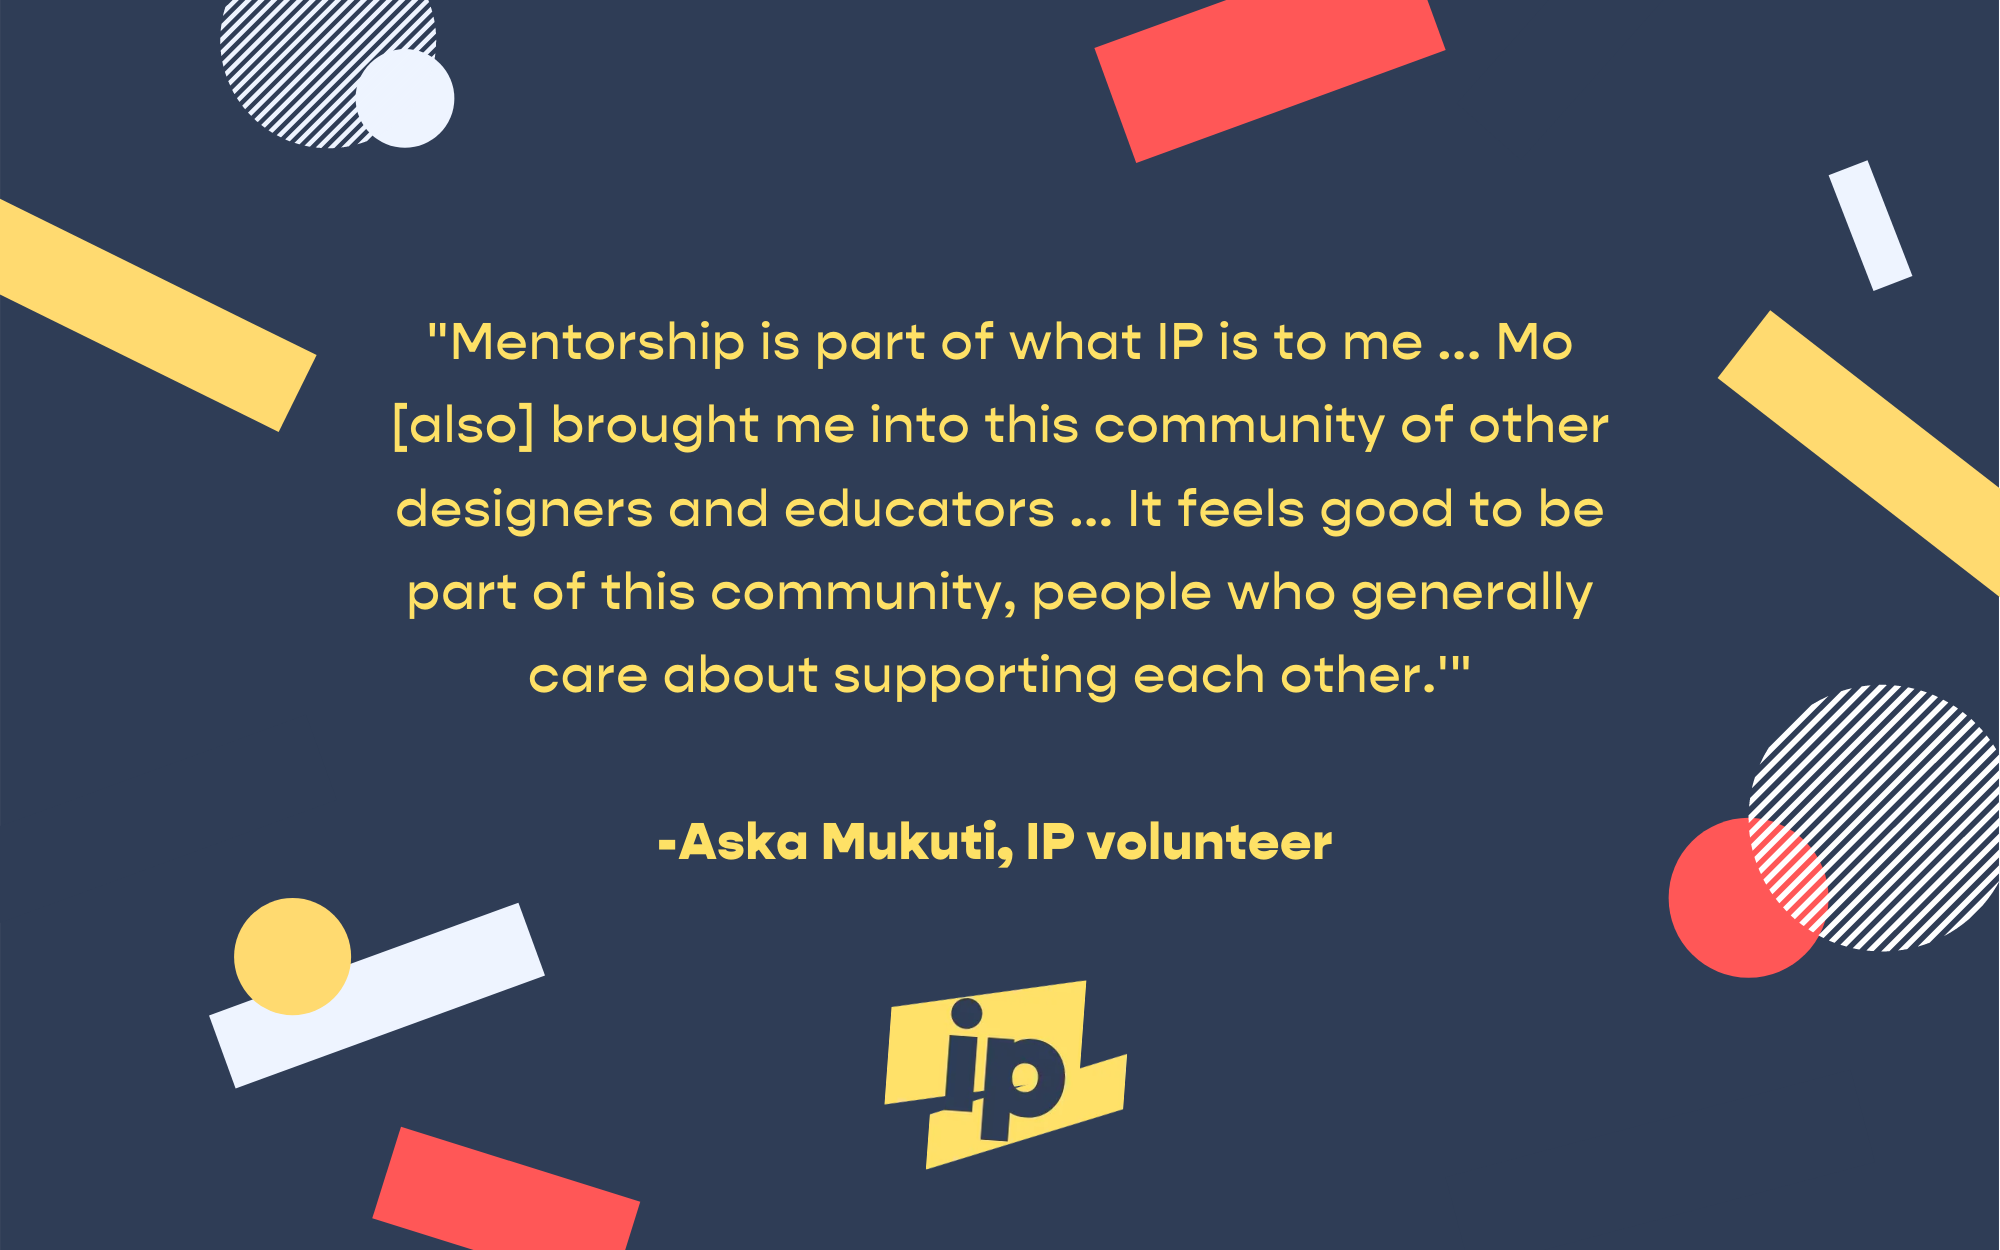 """Yellow text on blue background, surrounded by abstract shapes in primary colors, with the yellow and navy IP logo at the bottom. Quote: """"Mentorship is part of what IP is to me...Mo [also] brought me into this community of other designers and educators...It feels good to be part of this community, people who generally care about supporting each other."""" -Aska Mukuti, IP volunteer"""